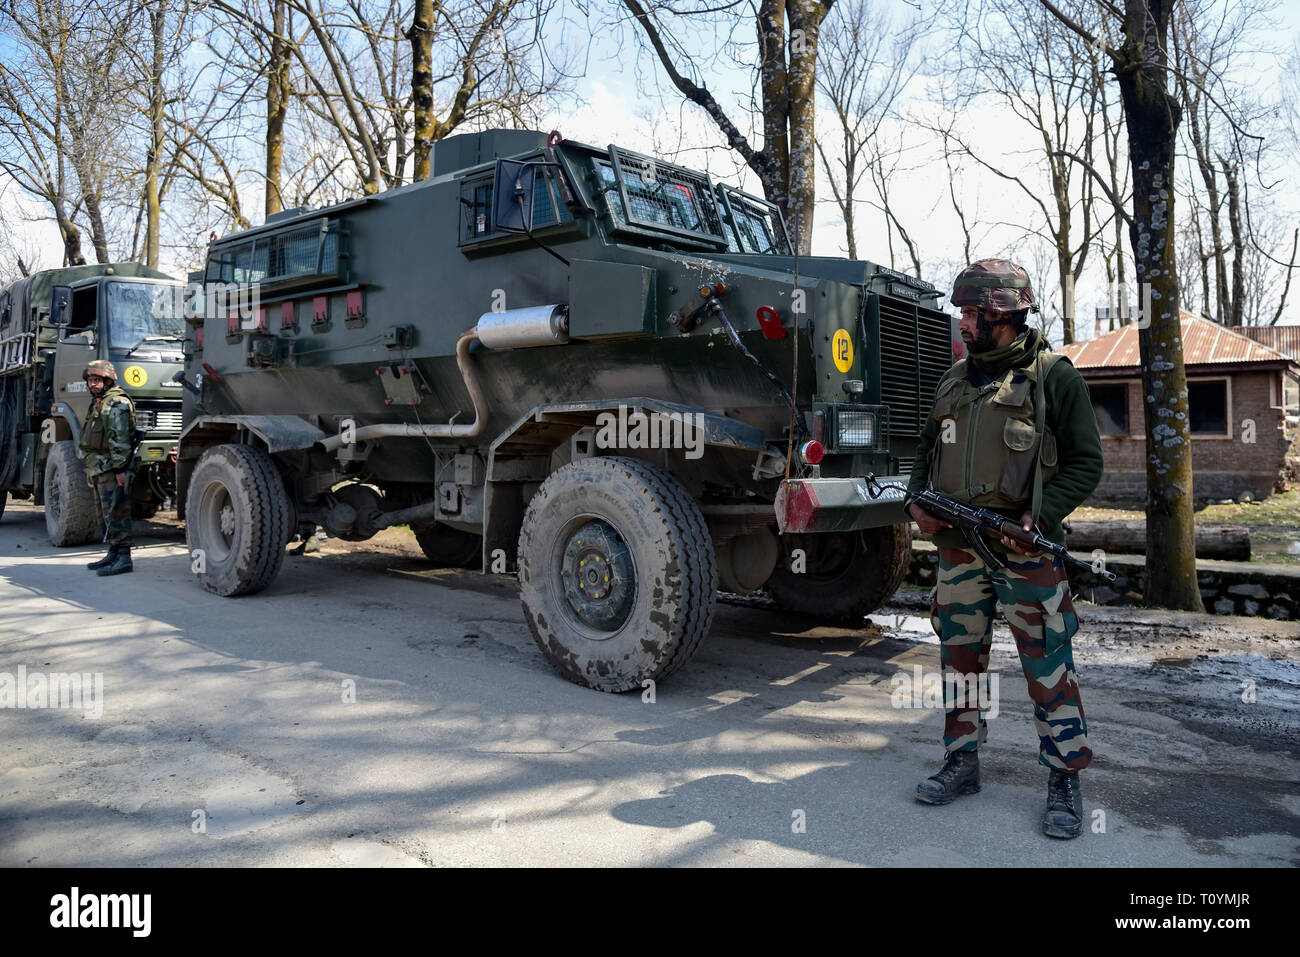 Army Vehicle India High Resolution Stock Photography And Images Alamy